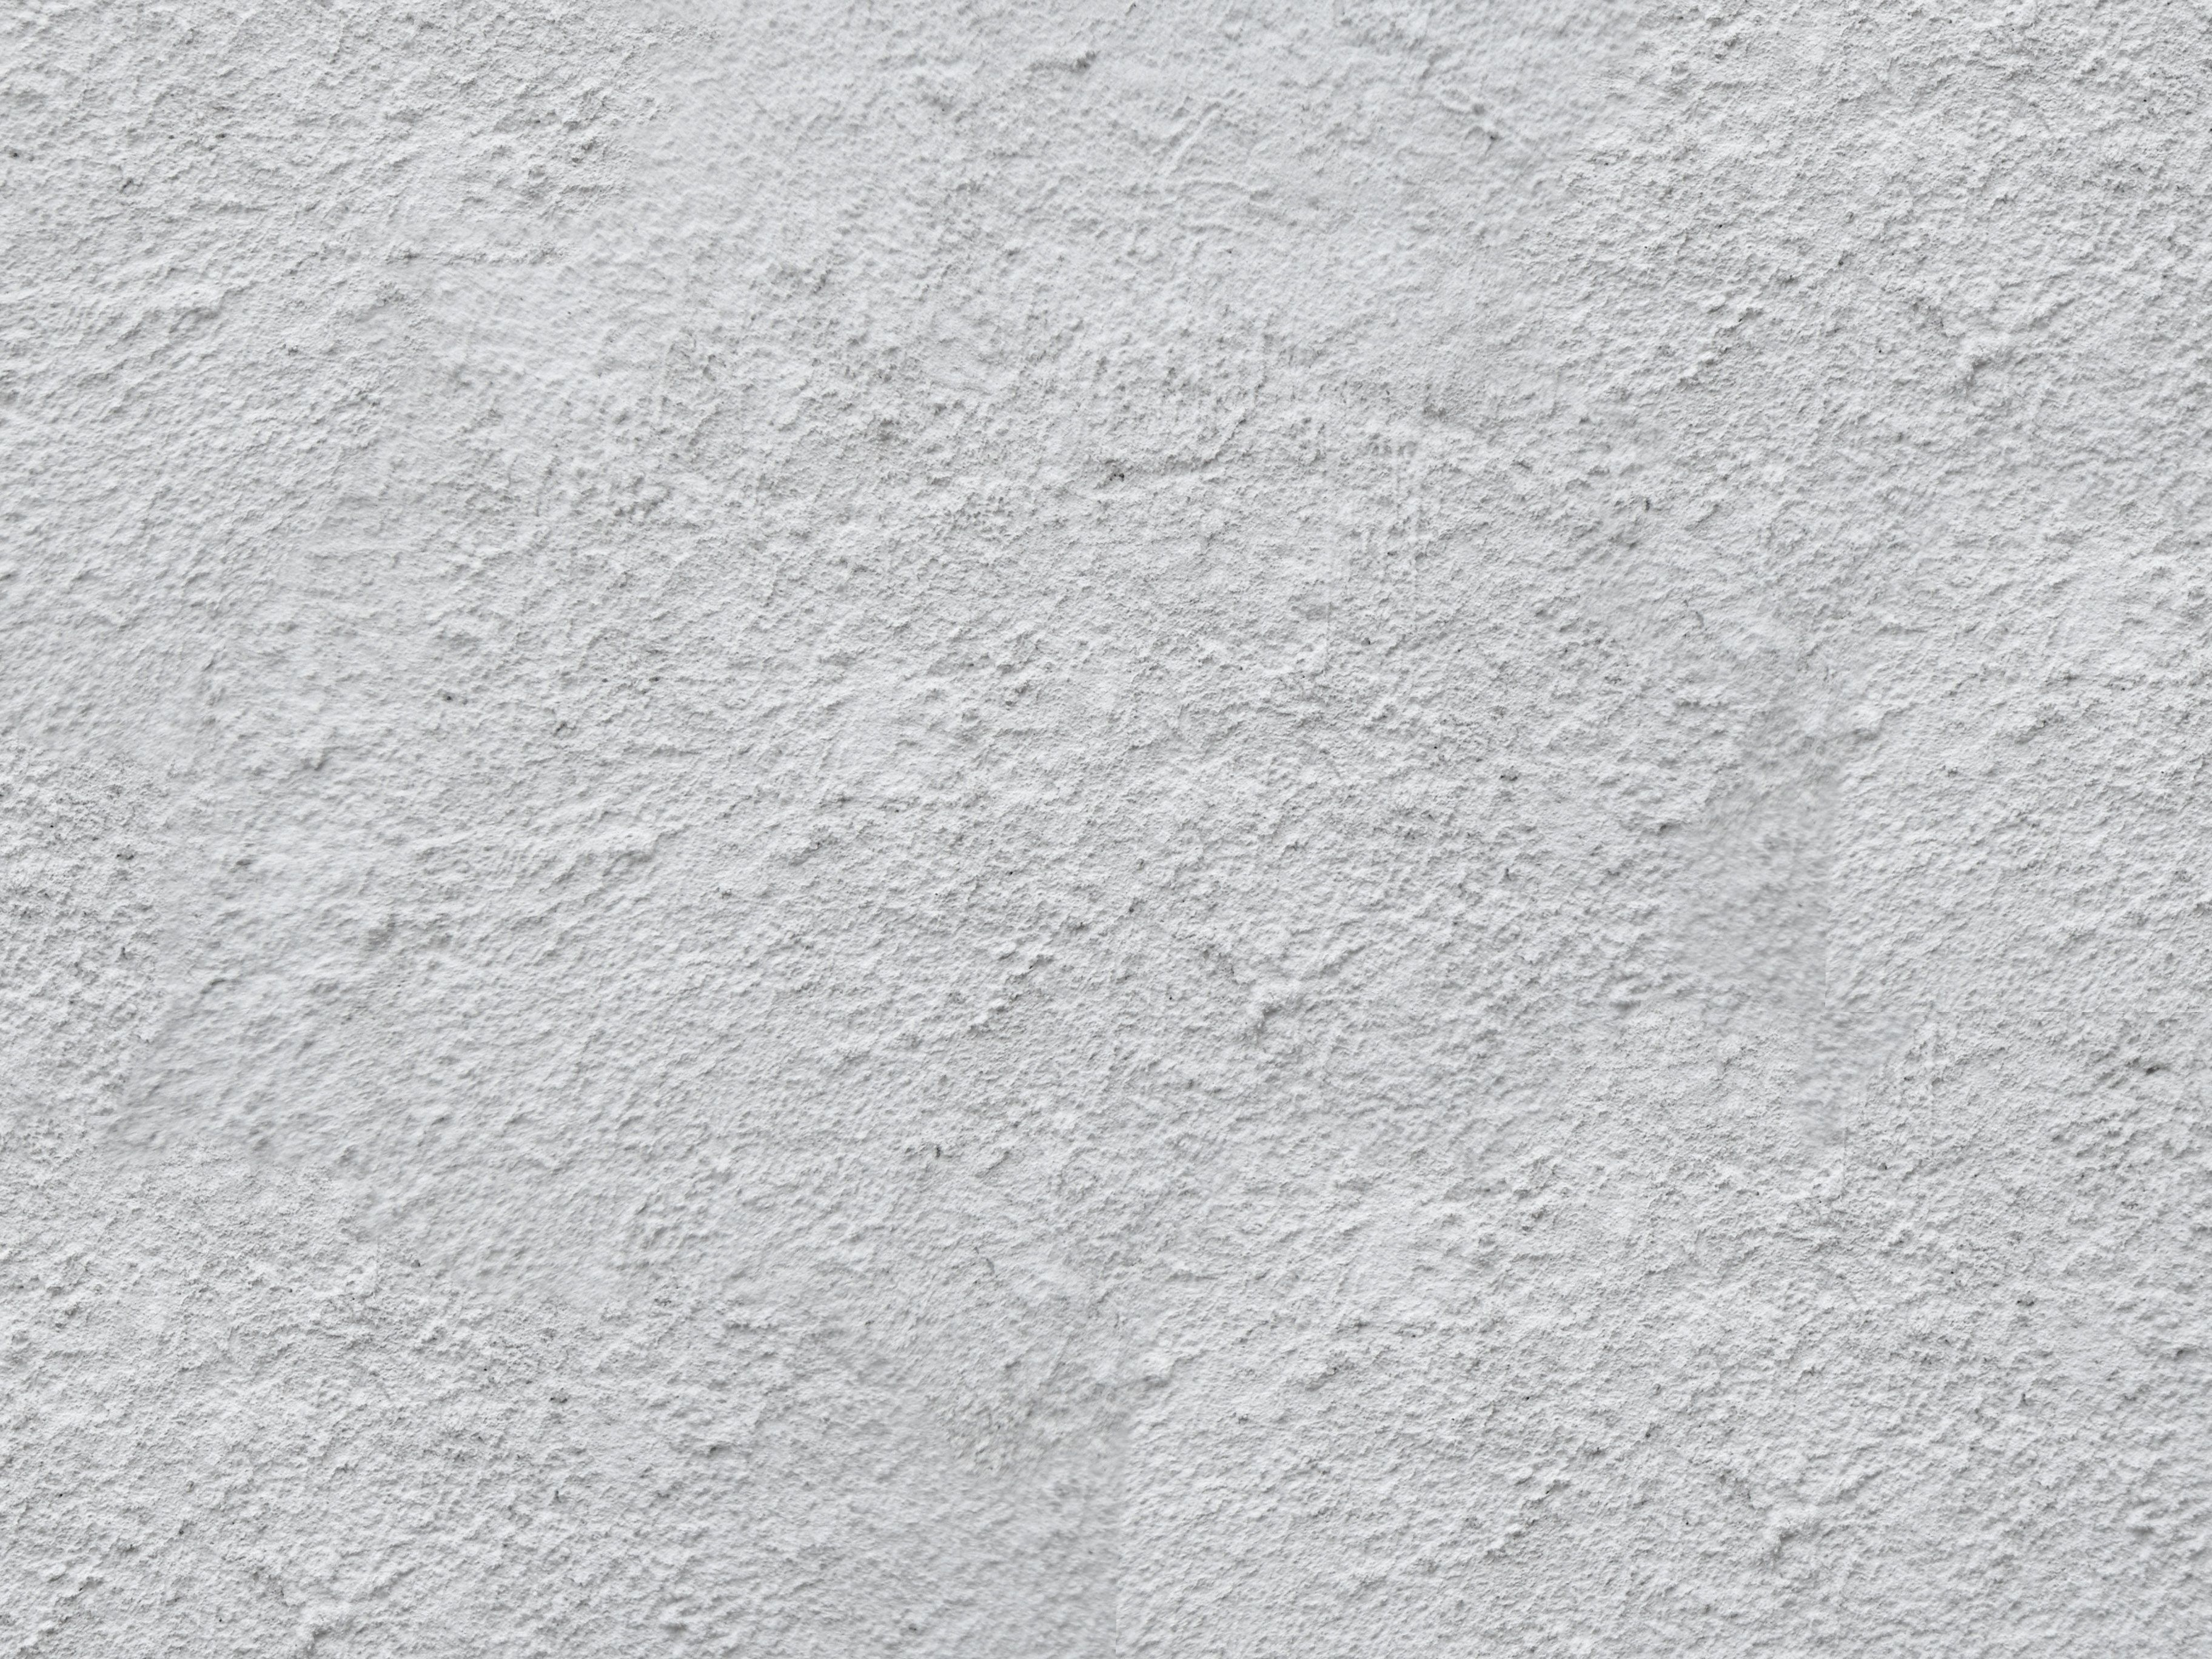 Old Plaster Wall Texture